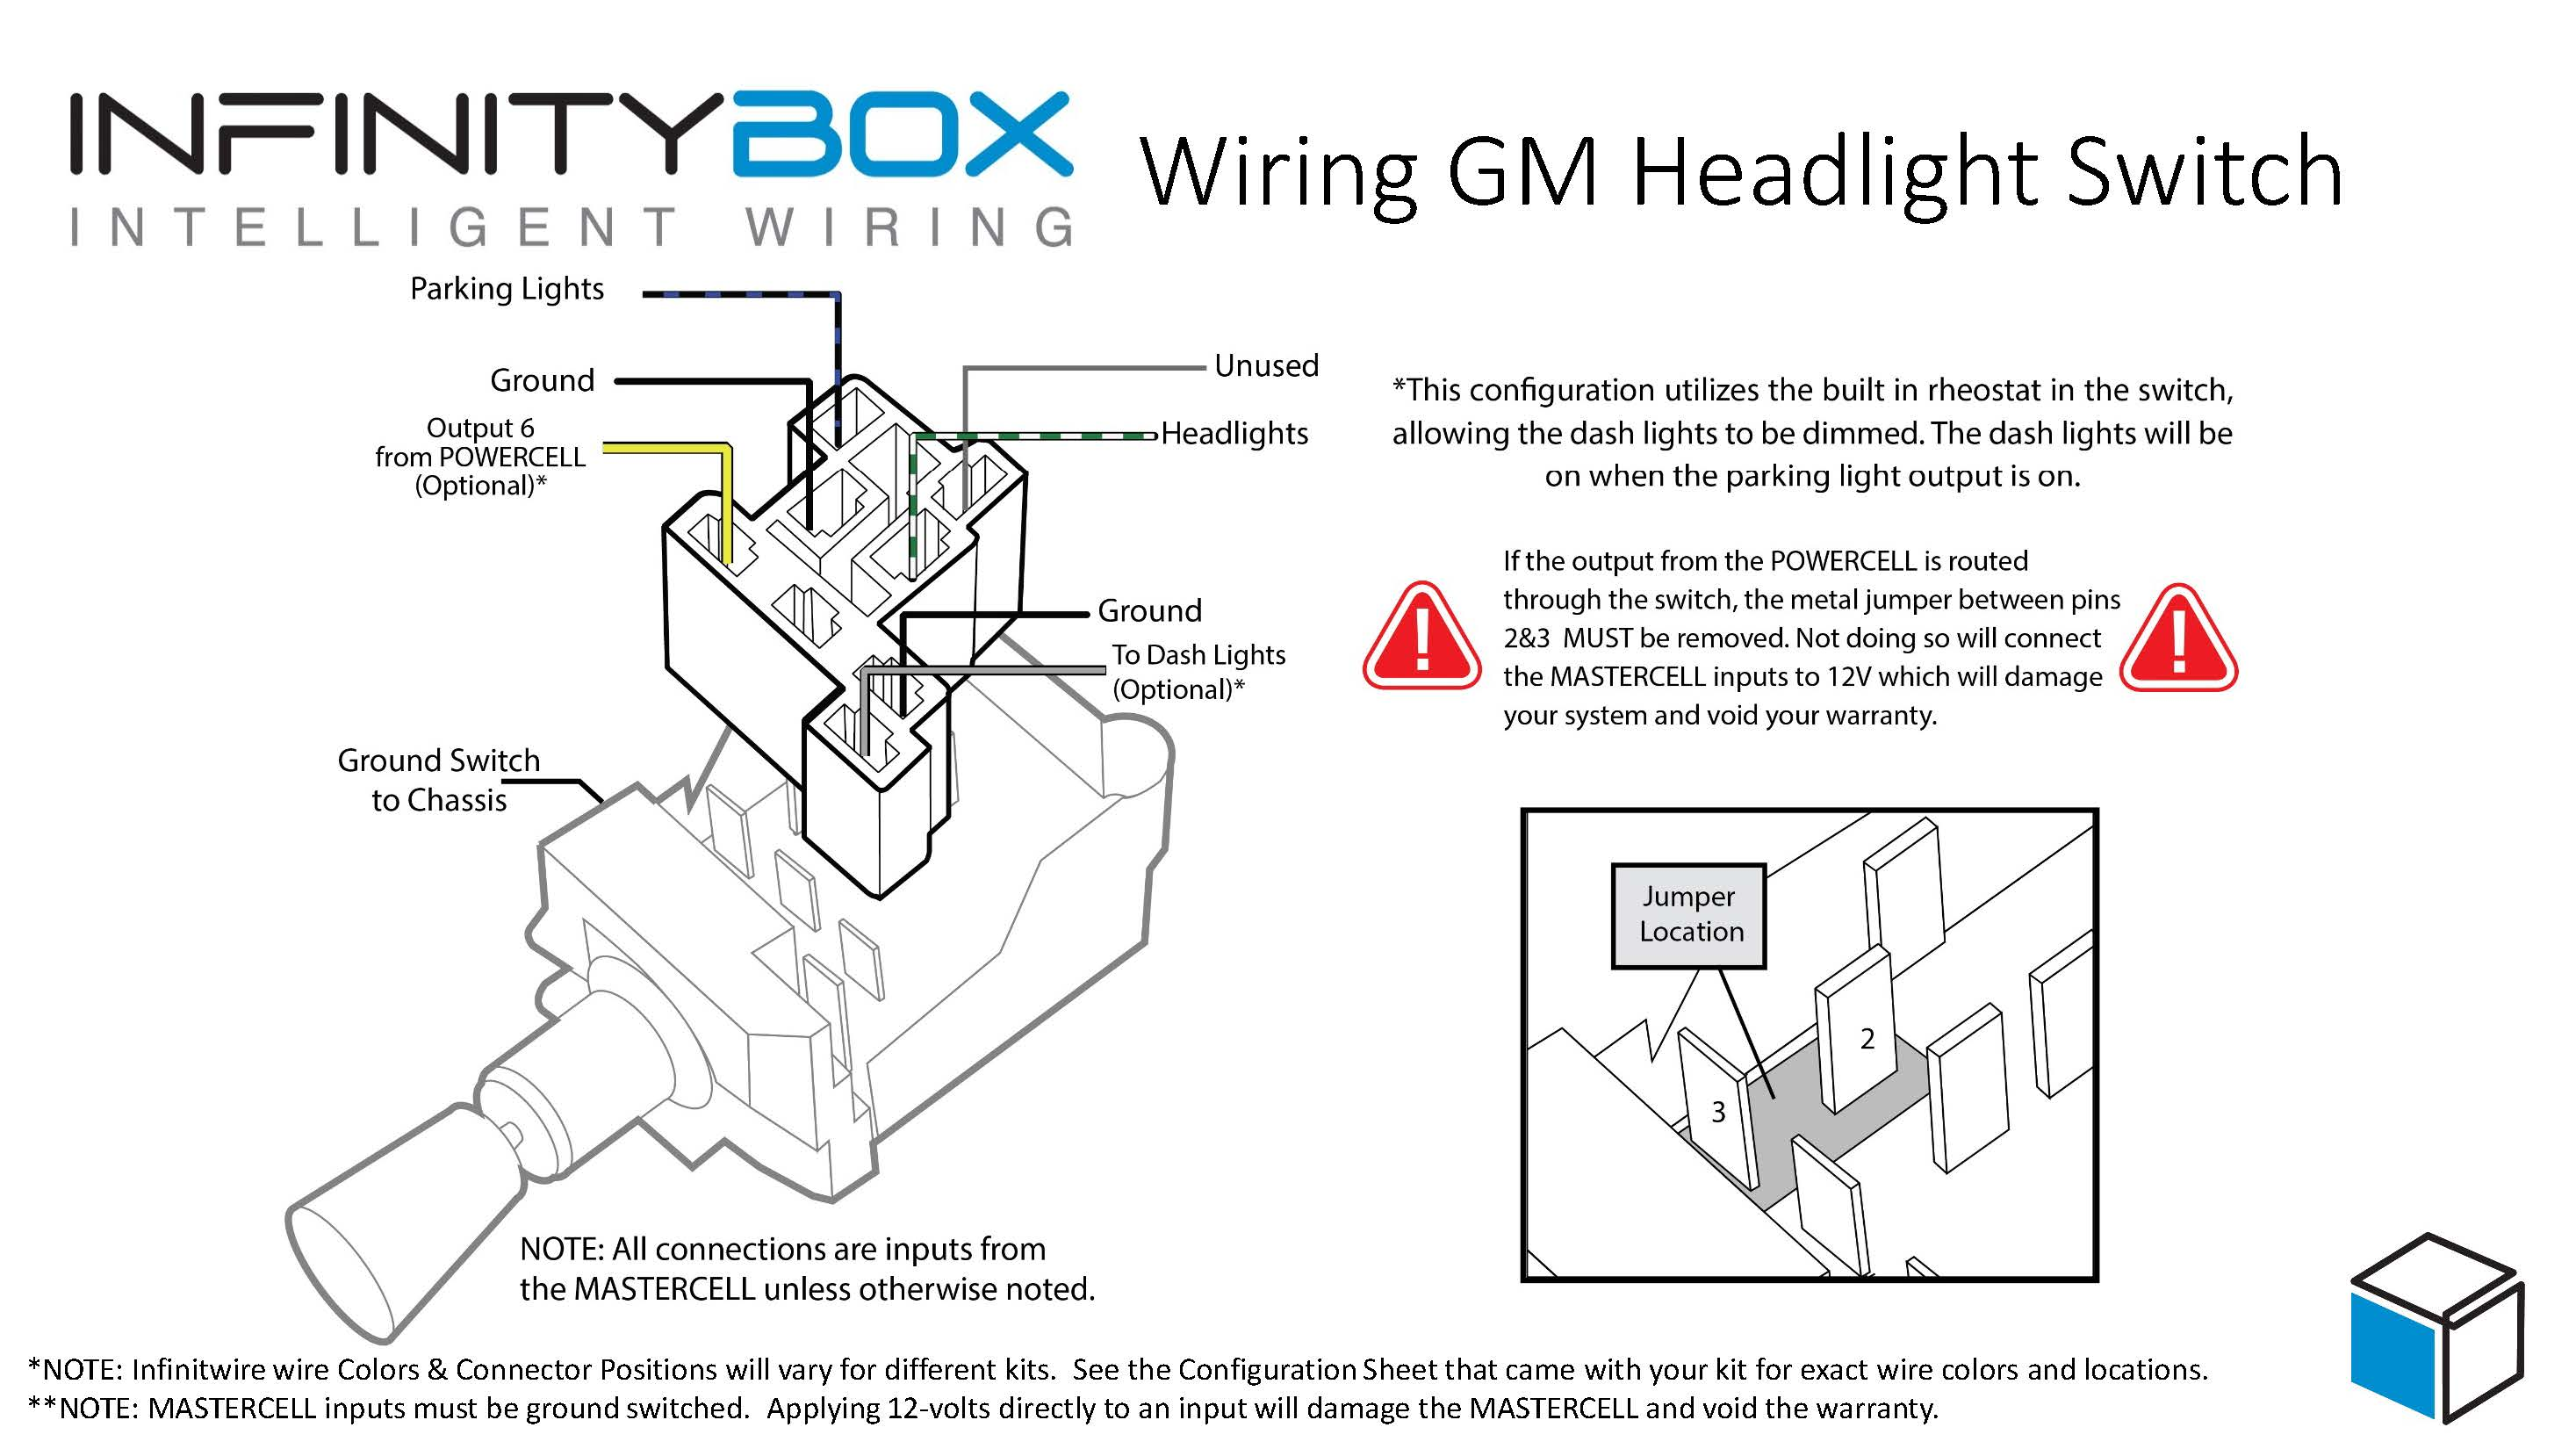 Phenomenal Headlight Switch Wiring Diagram Wiring Diagram Data Schema Wiring Cloud Intelaidewilluminateatxorg